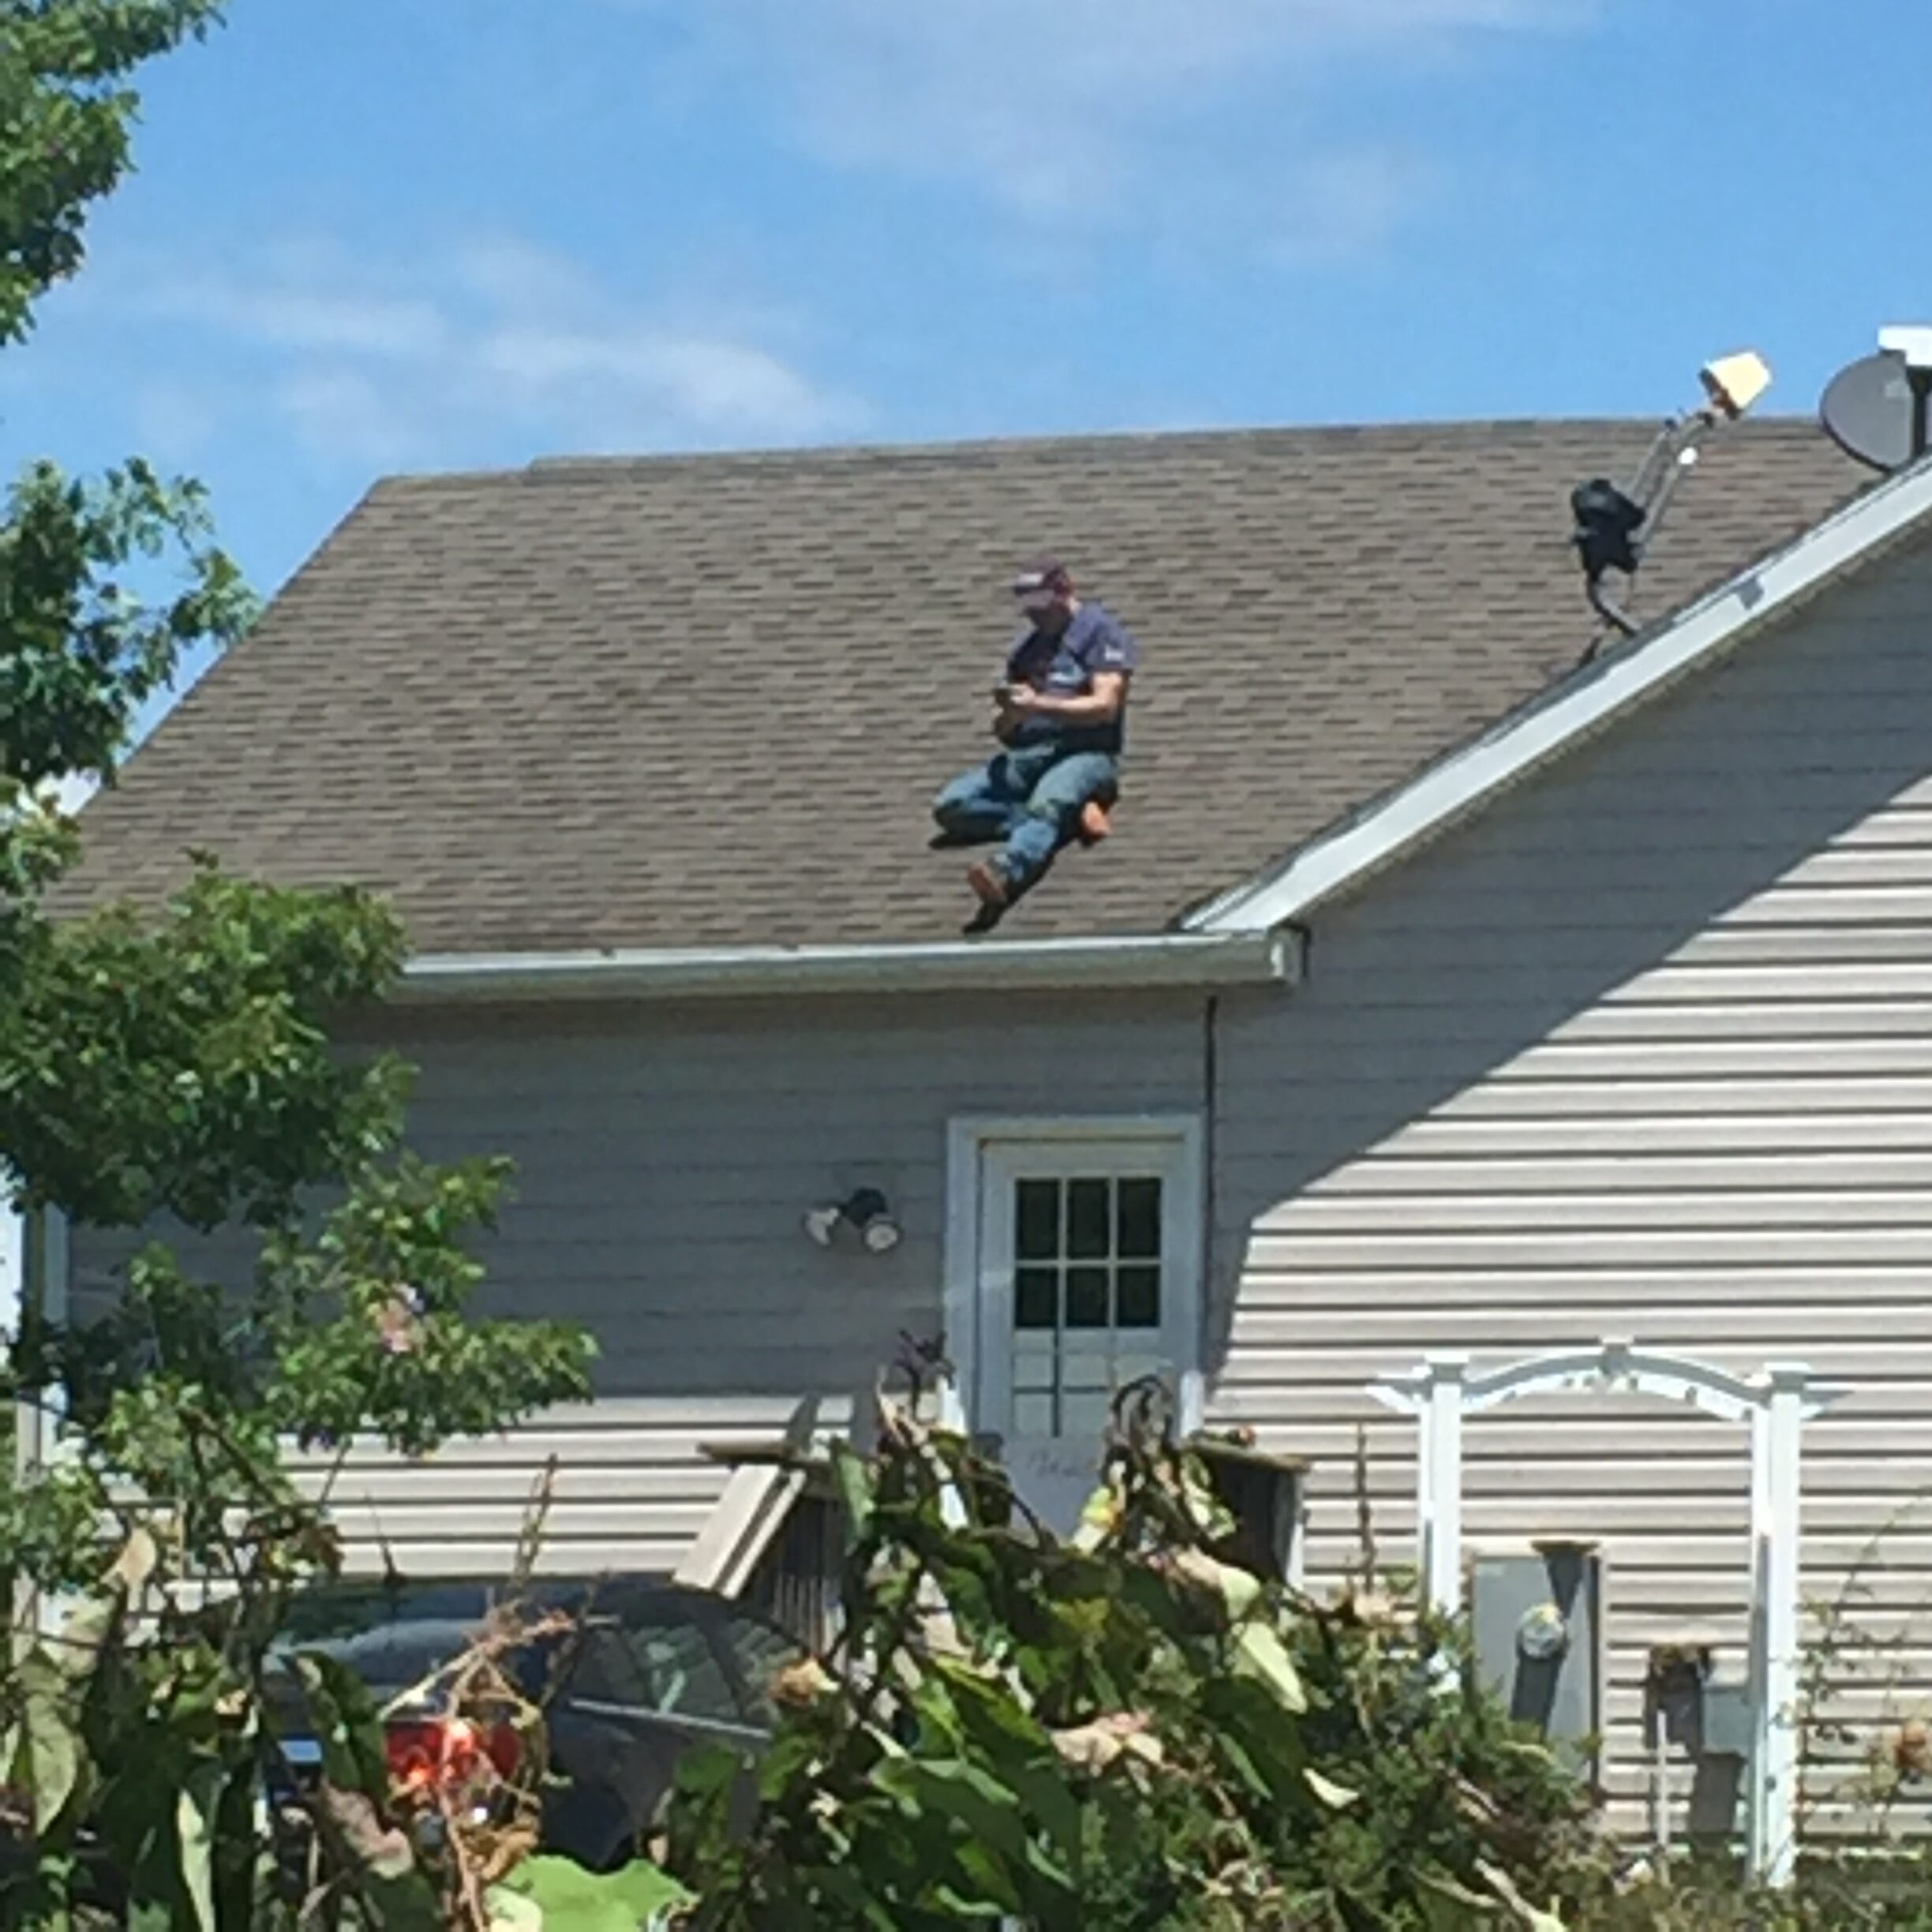 Jared stuck on the roof